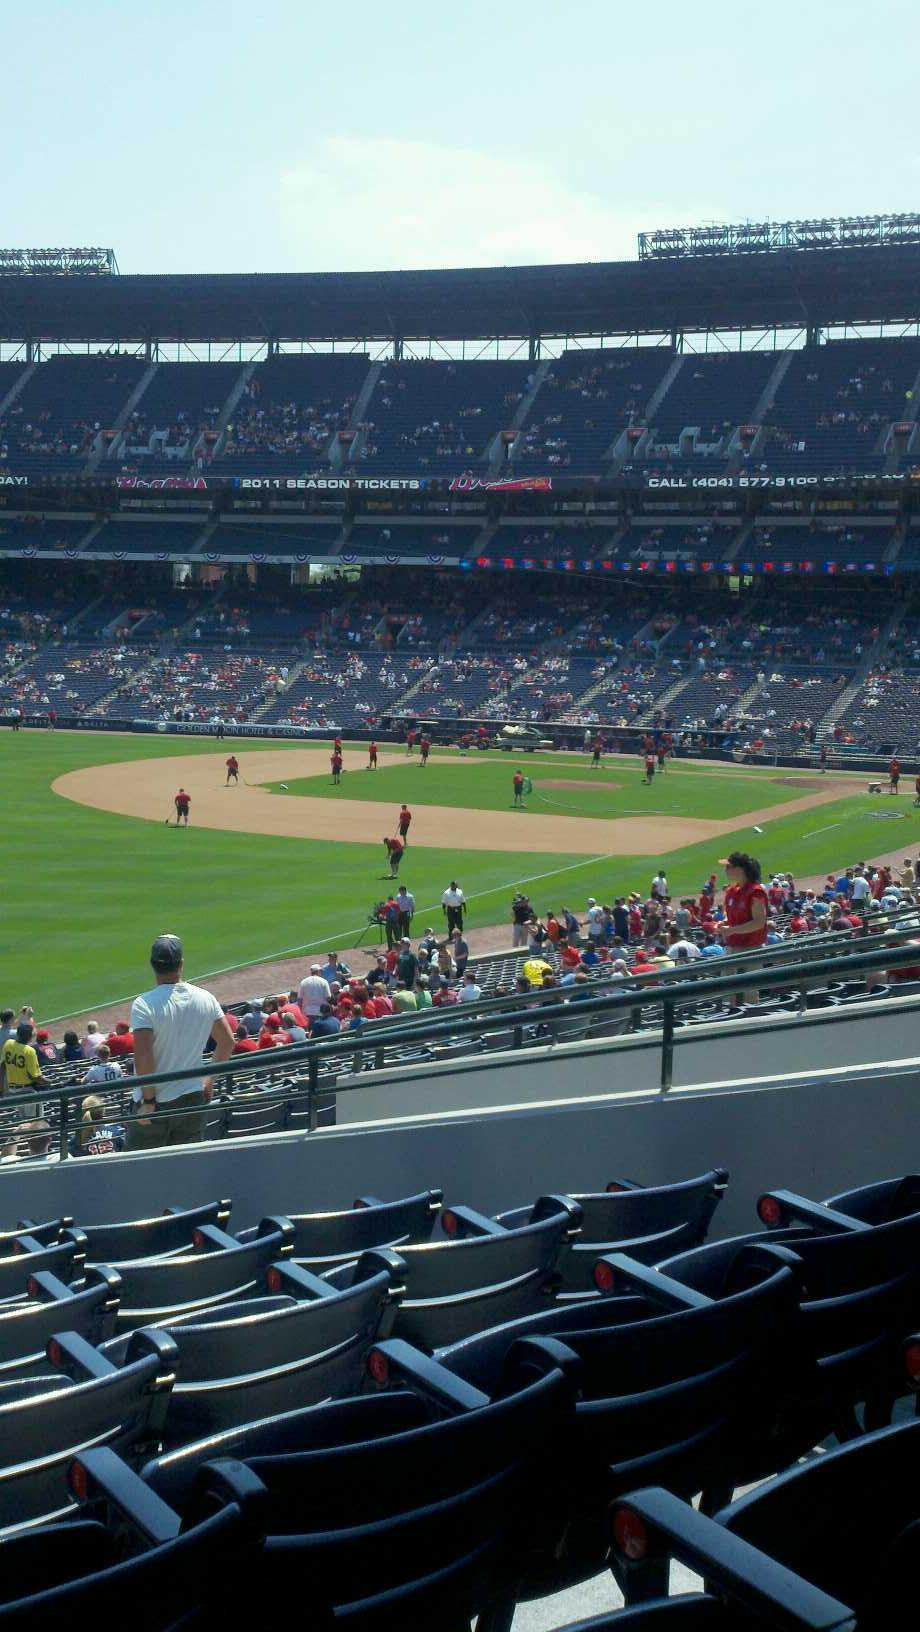 Turner Field Section 228 Row 4 Seat 8